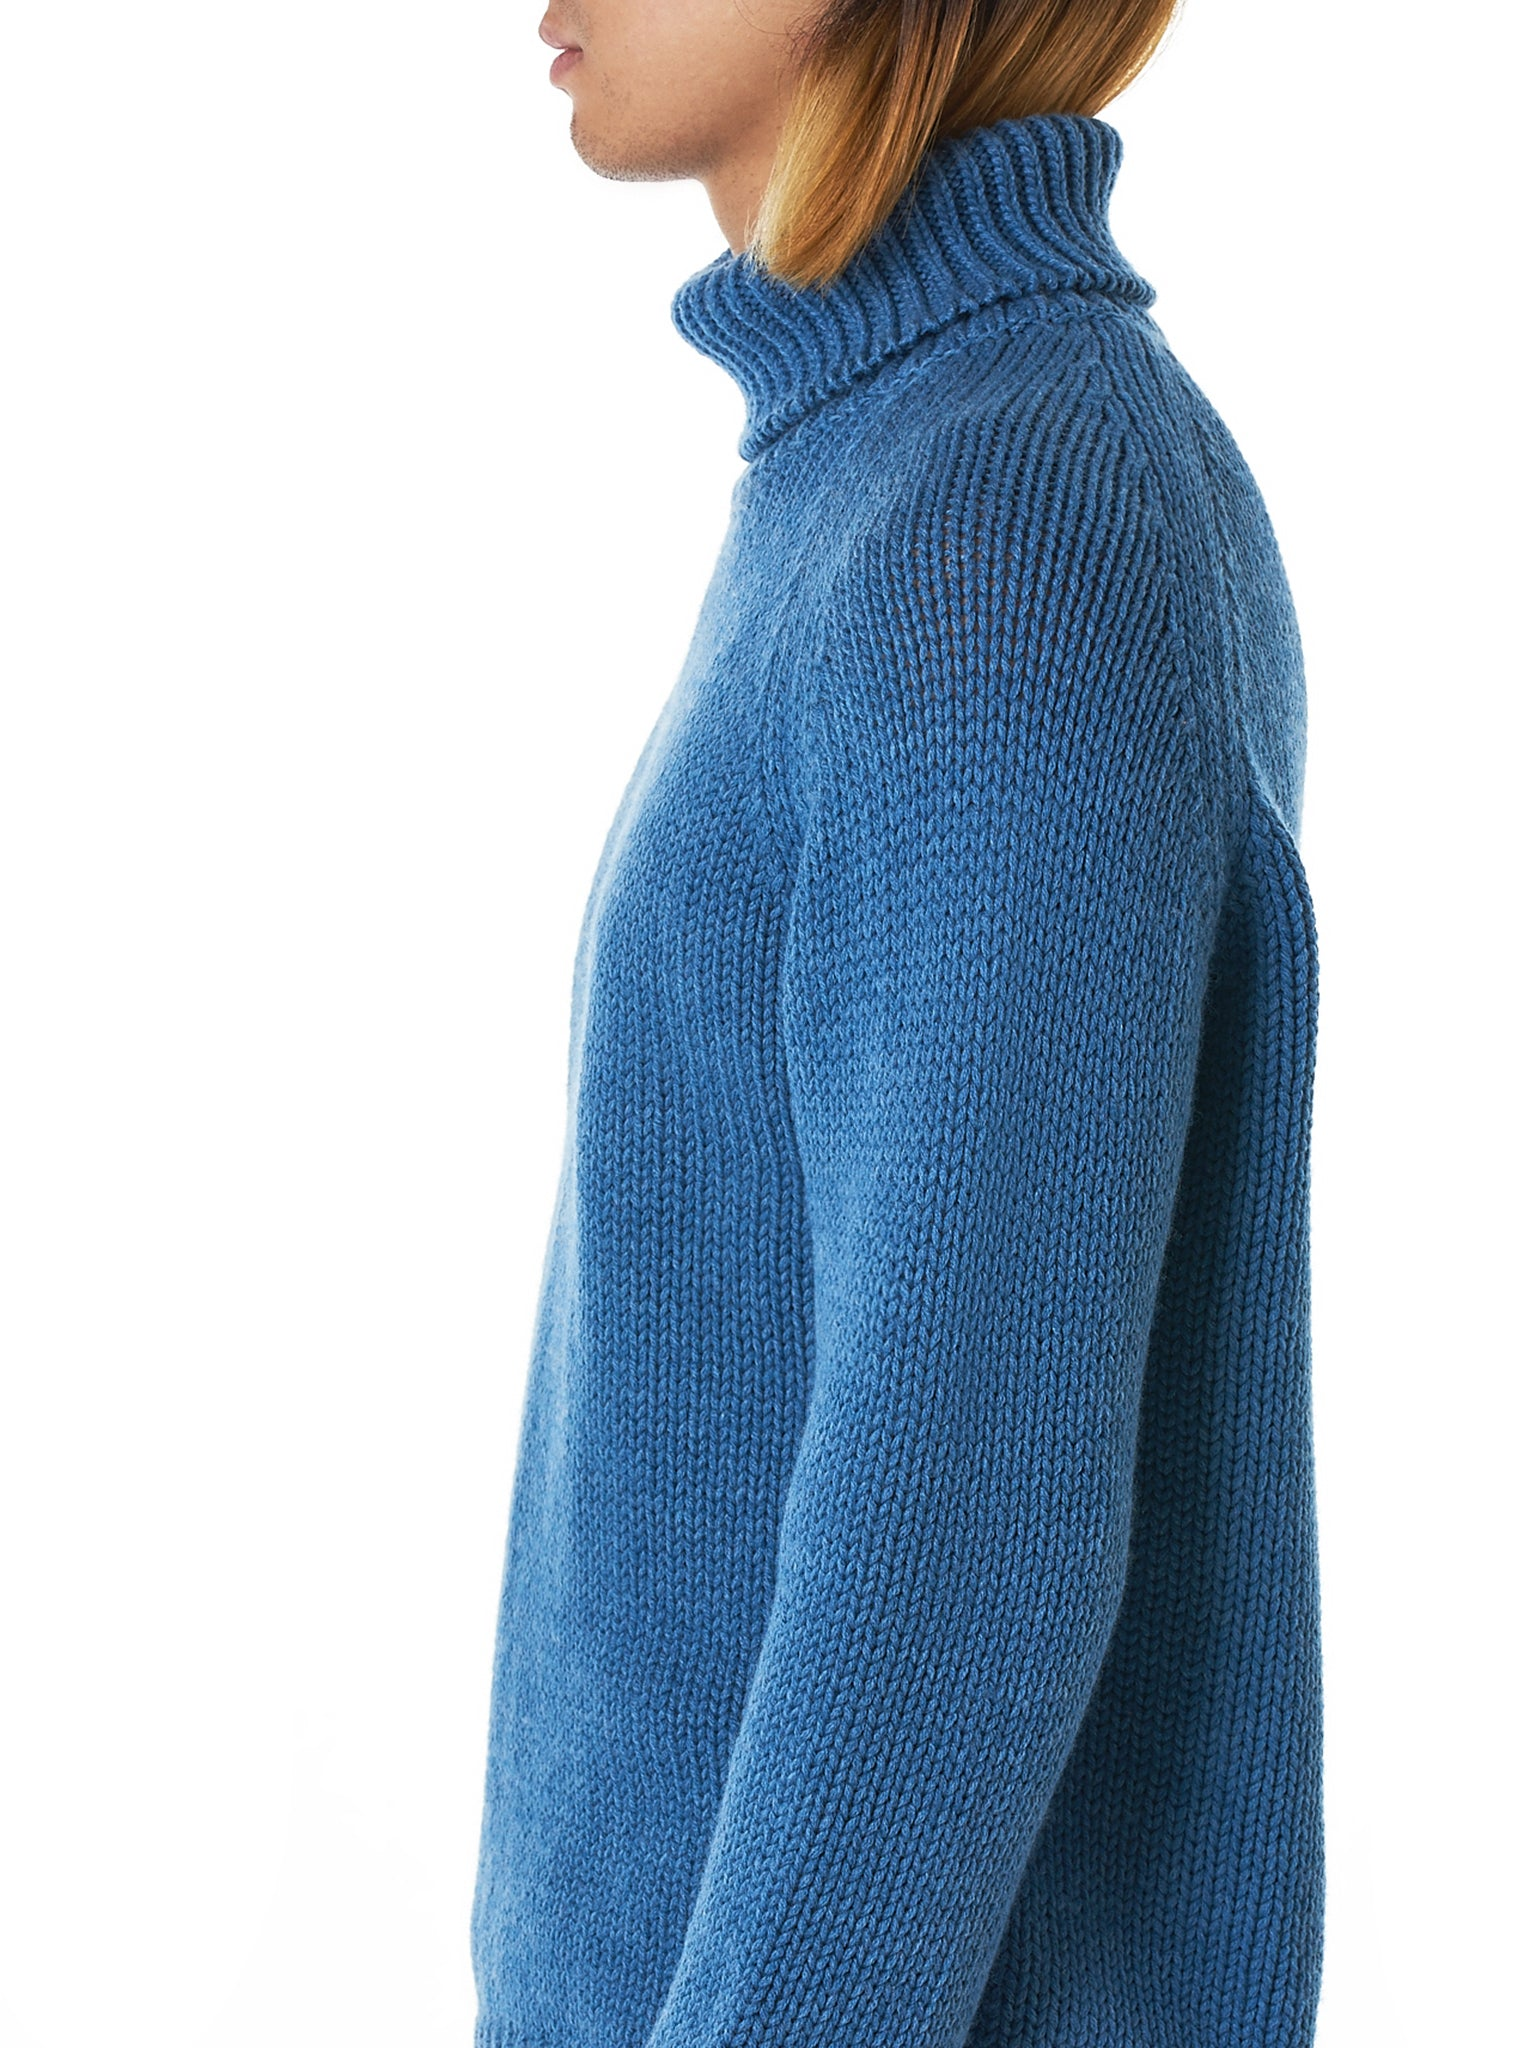 Bleu de Cocagne Turtleneck Sweater - Hlorenzo Detail 2